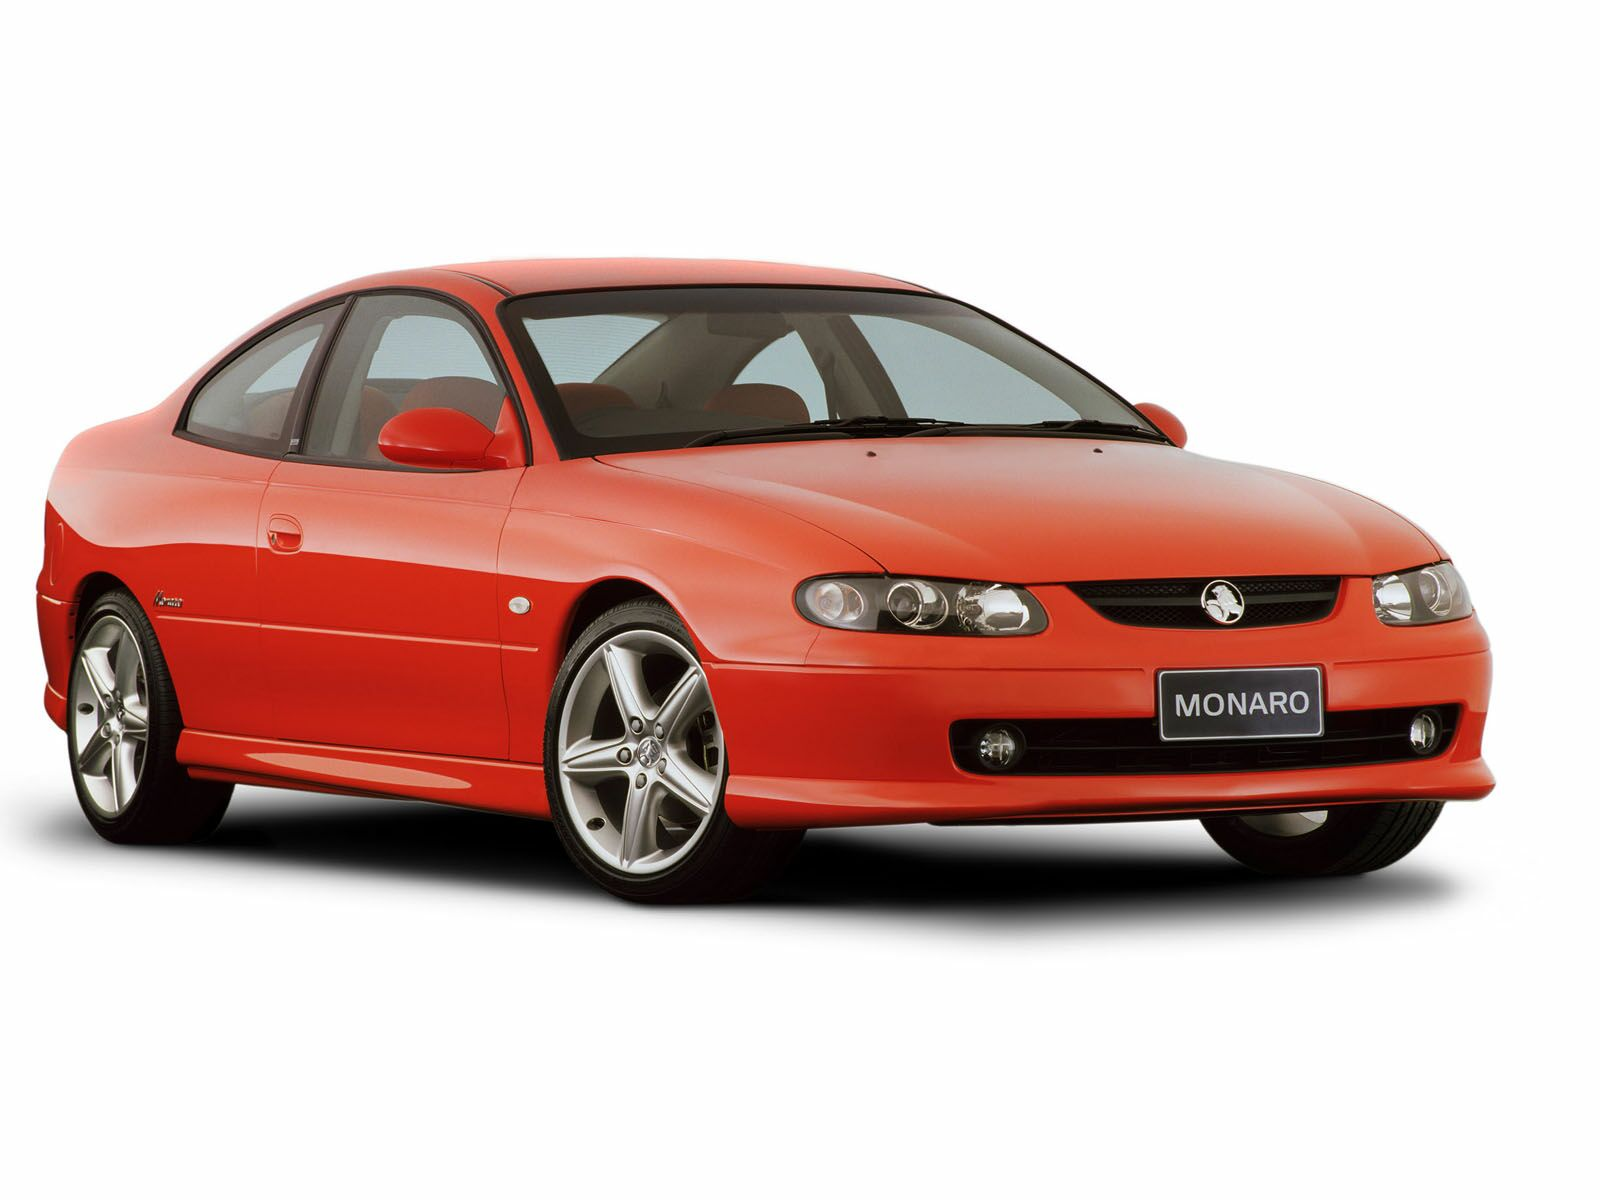 holden monaro Search for new & used holden monaro cars for sale in australia read holden monaro car reviews and compare holden monaro prices and features at carsalescomau.